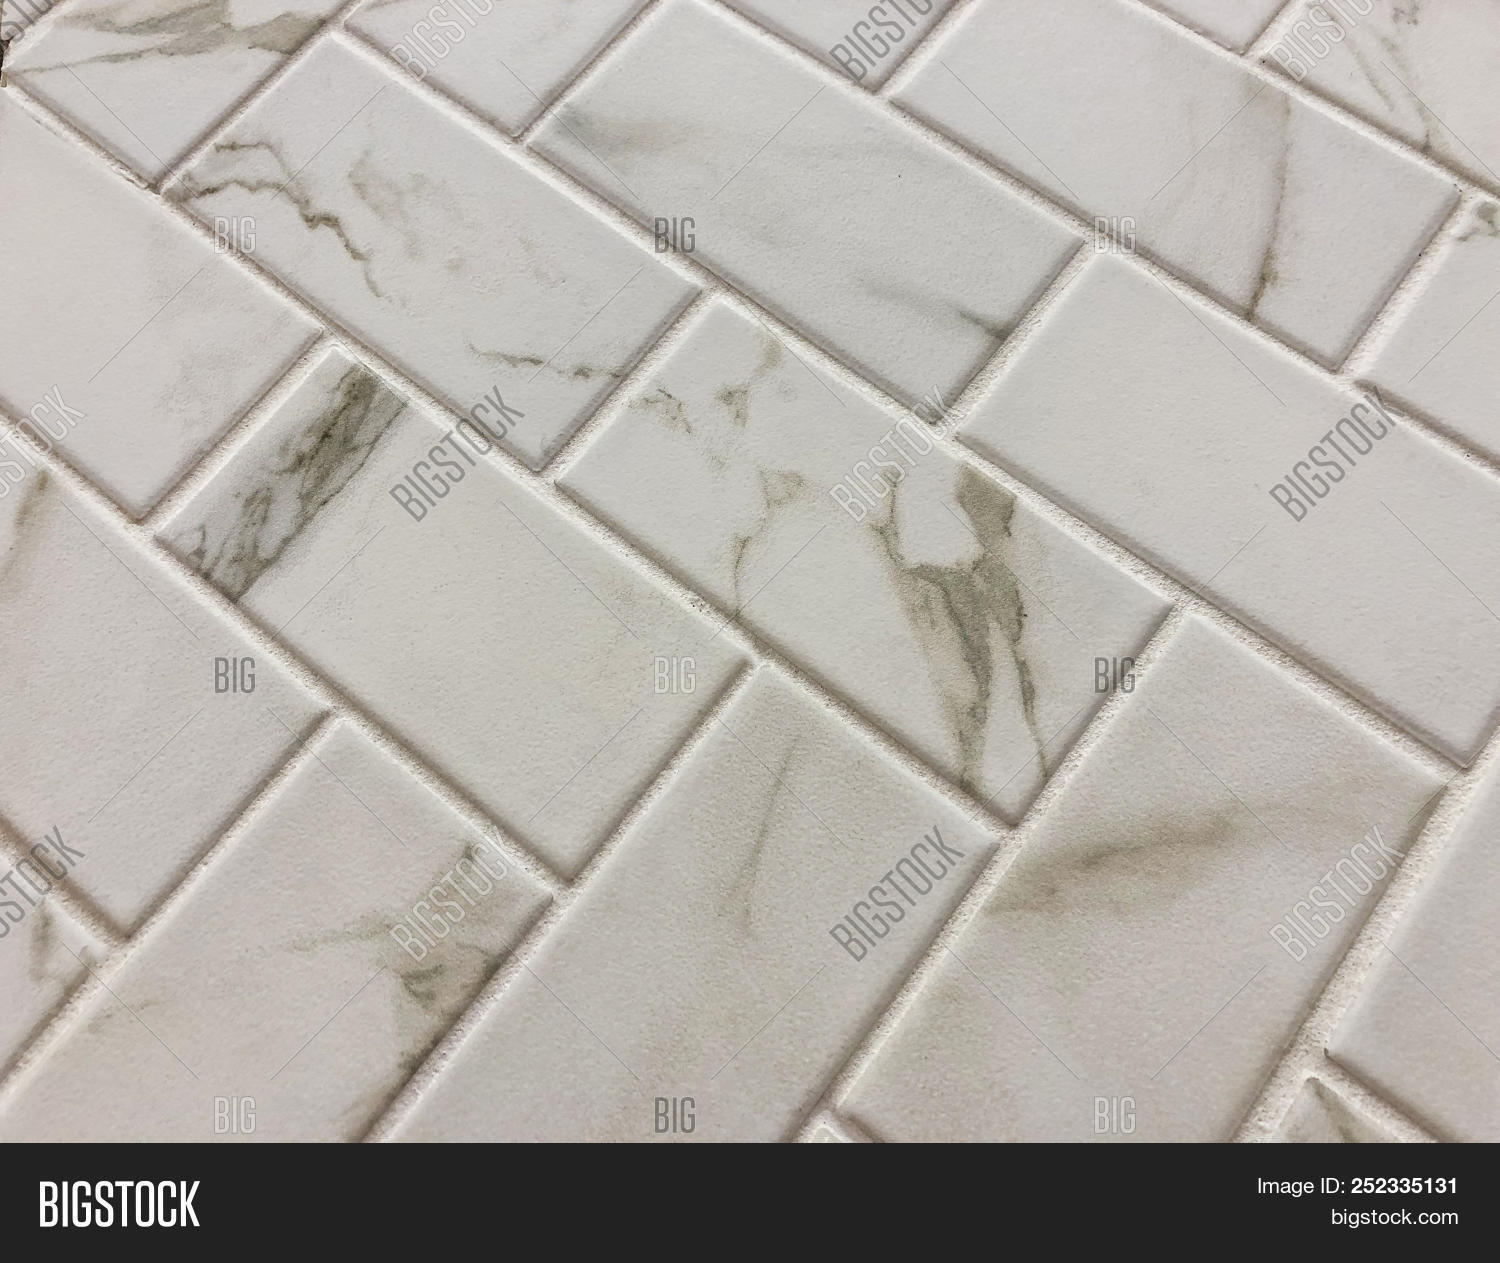 Modern Floor Tiles Image Photo Free Trial Stock